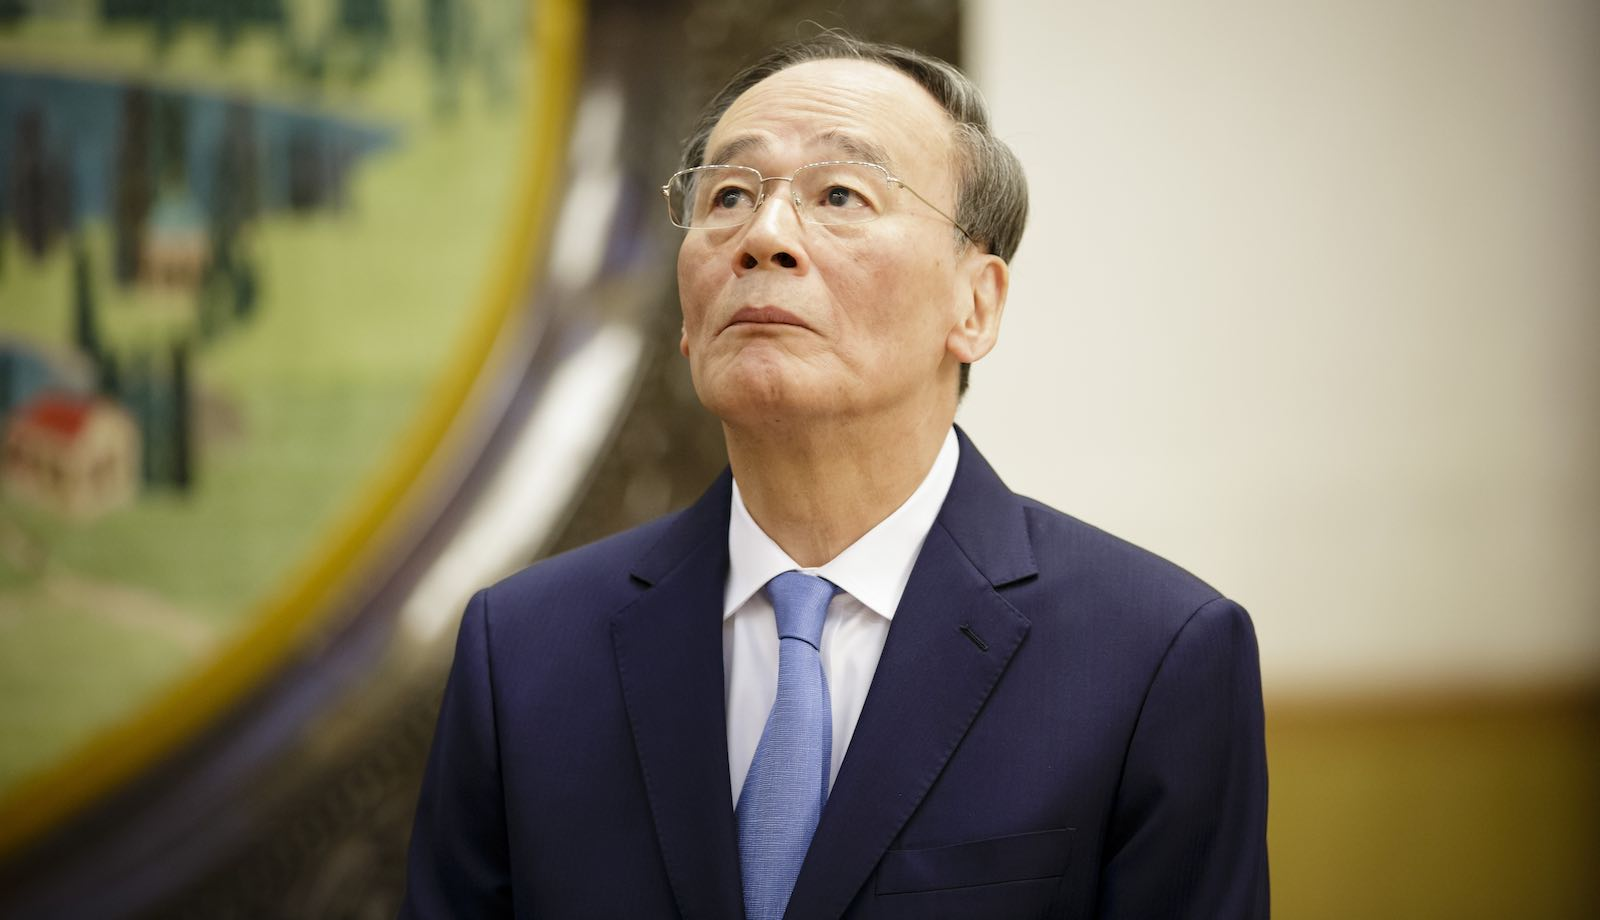 Wang Qishan, Vice President of the People's Republic of China (Photo: Inga Kjer via Getty)